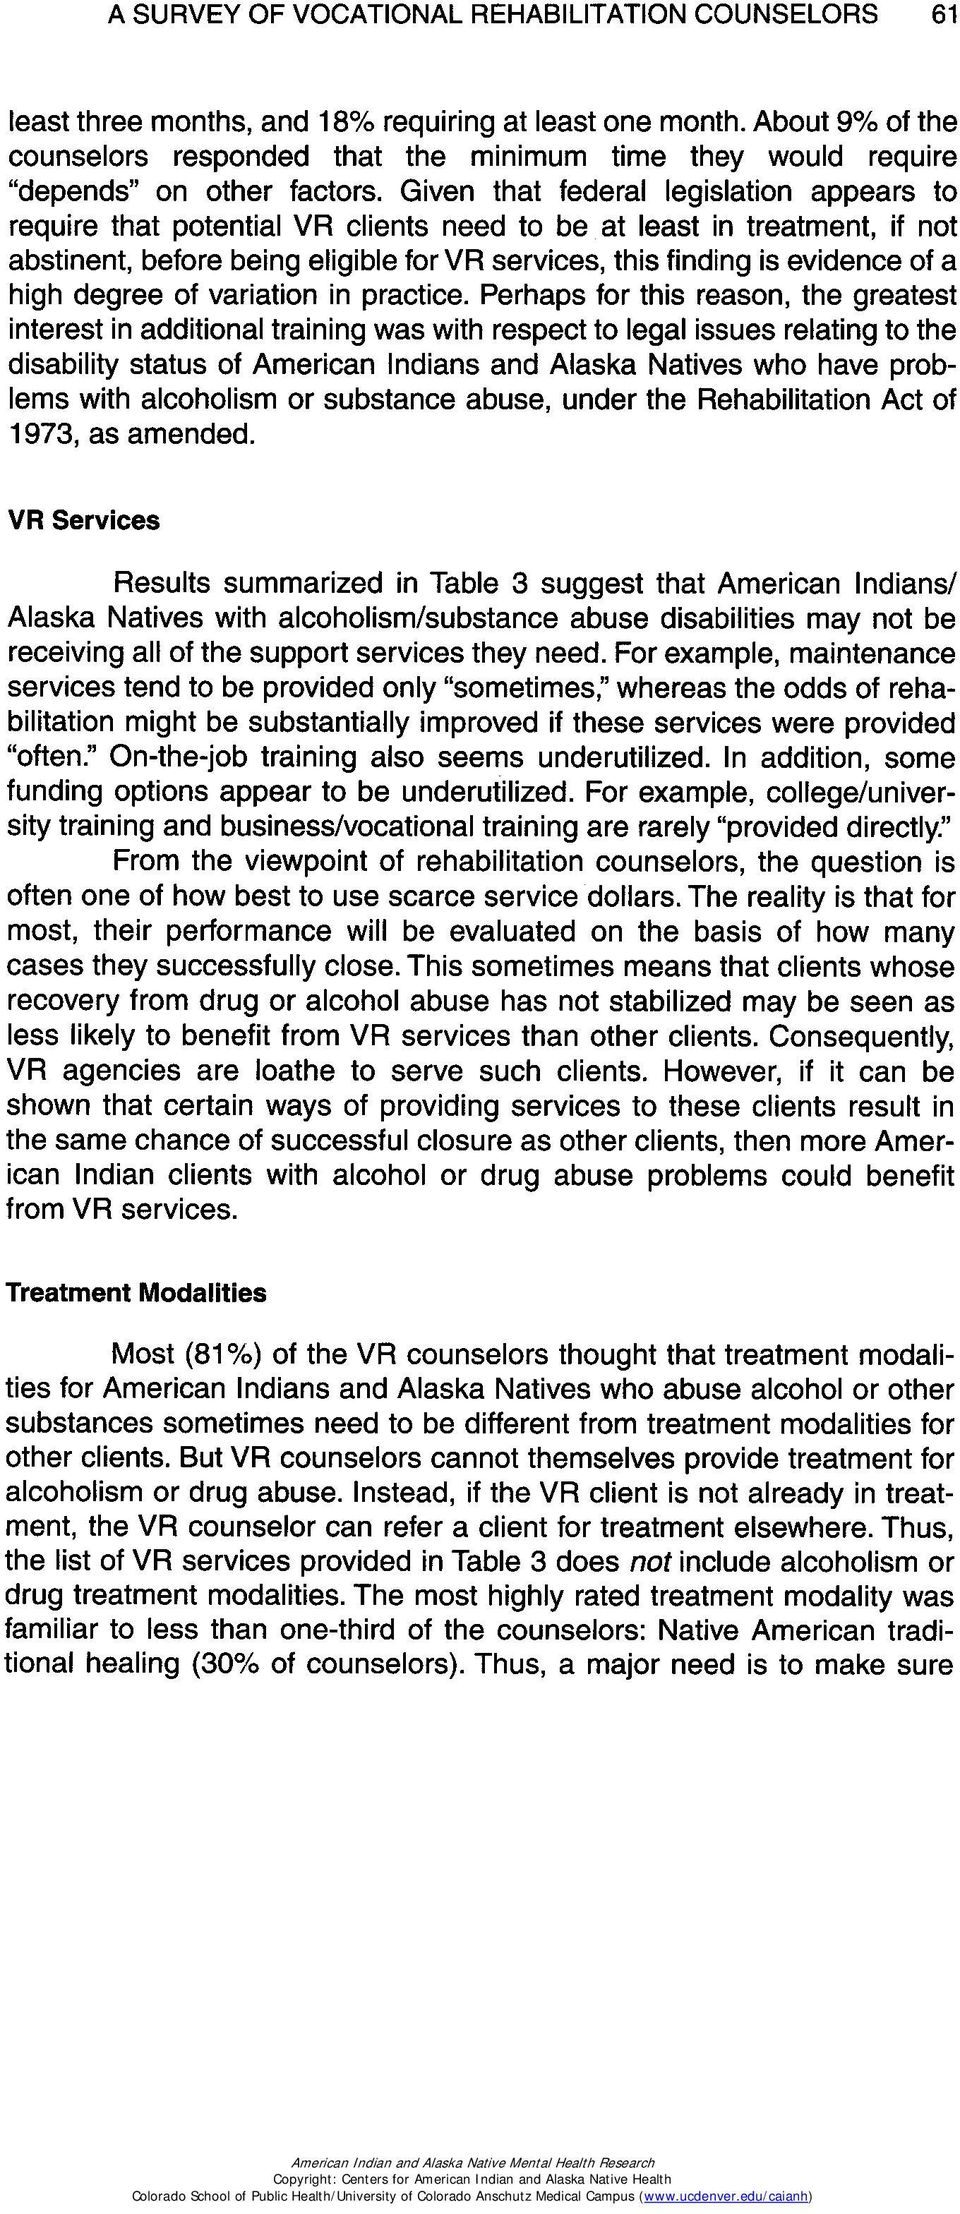 Given that federal legislation appears to require that potential VR clients need to be at least in treatment, if not abstinent, before being eligible for VR services, this finding is evidence of a